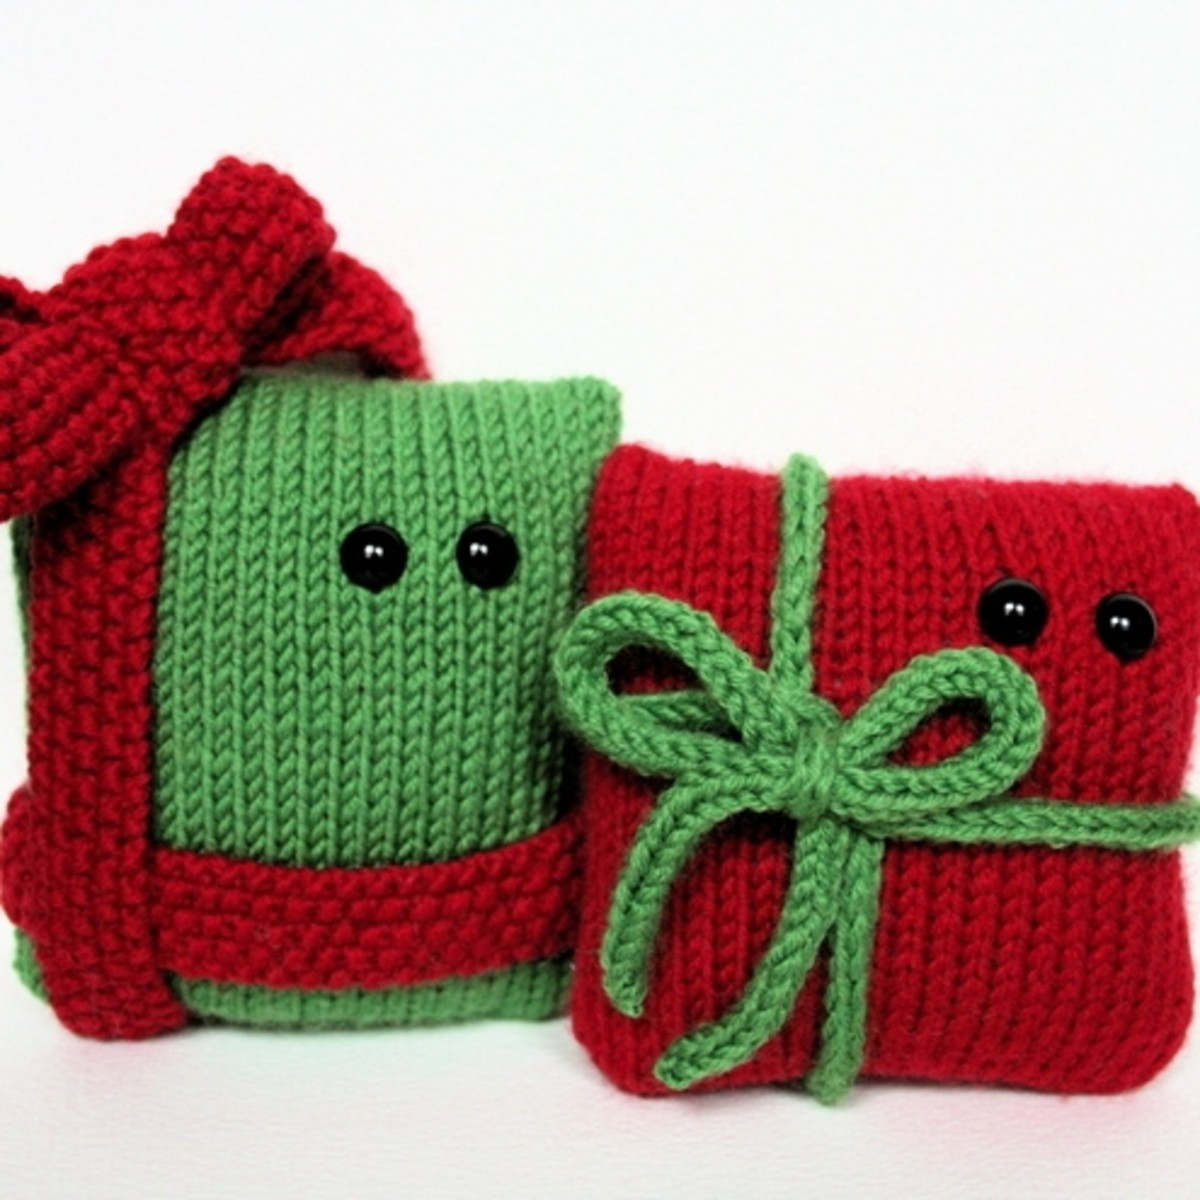 Knitted Presents